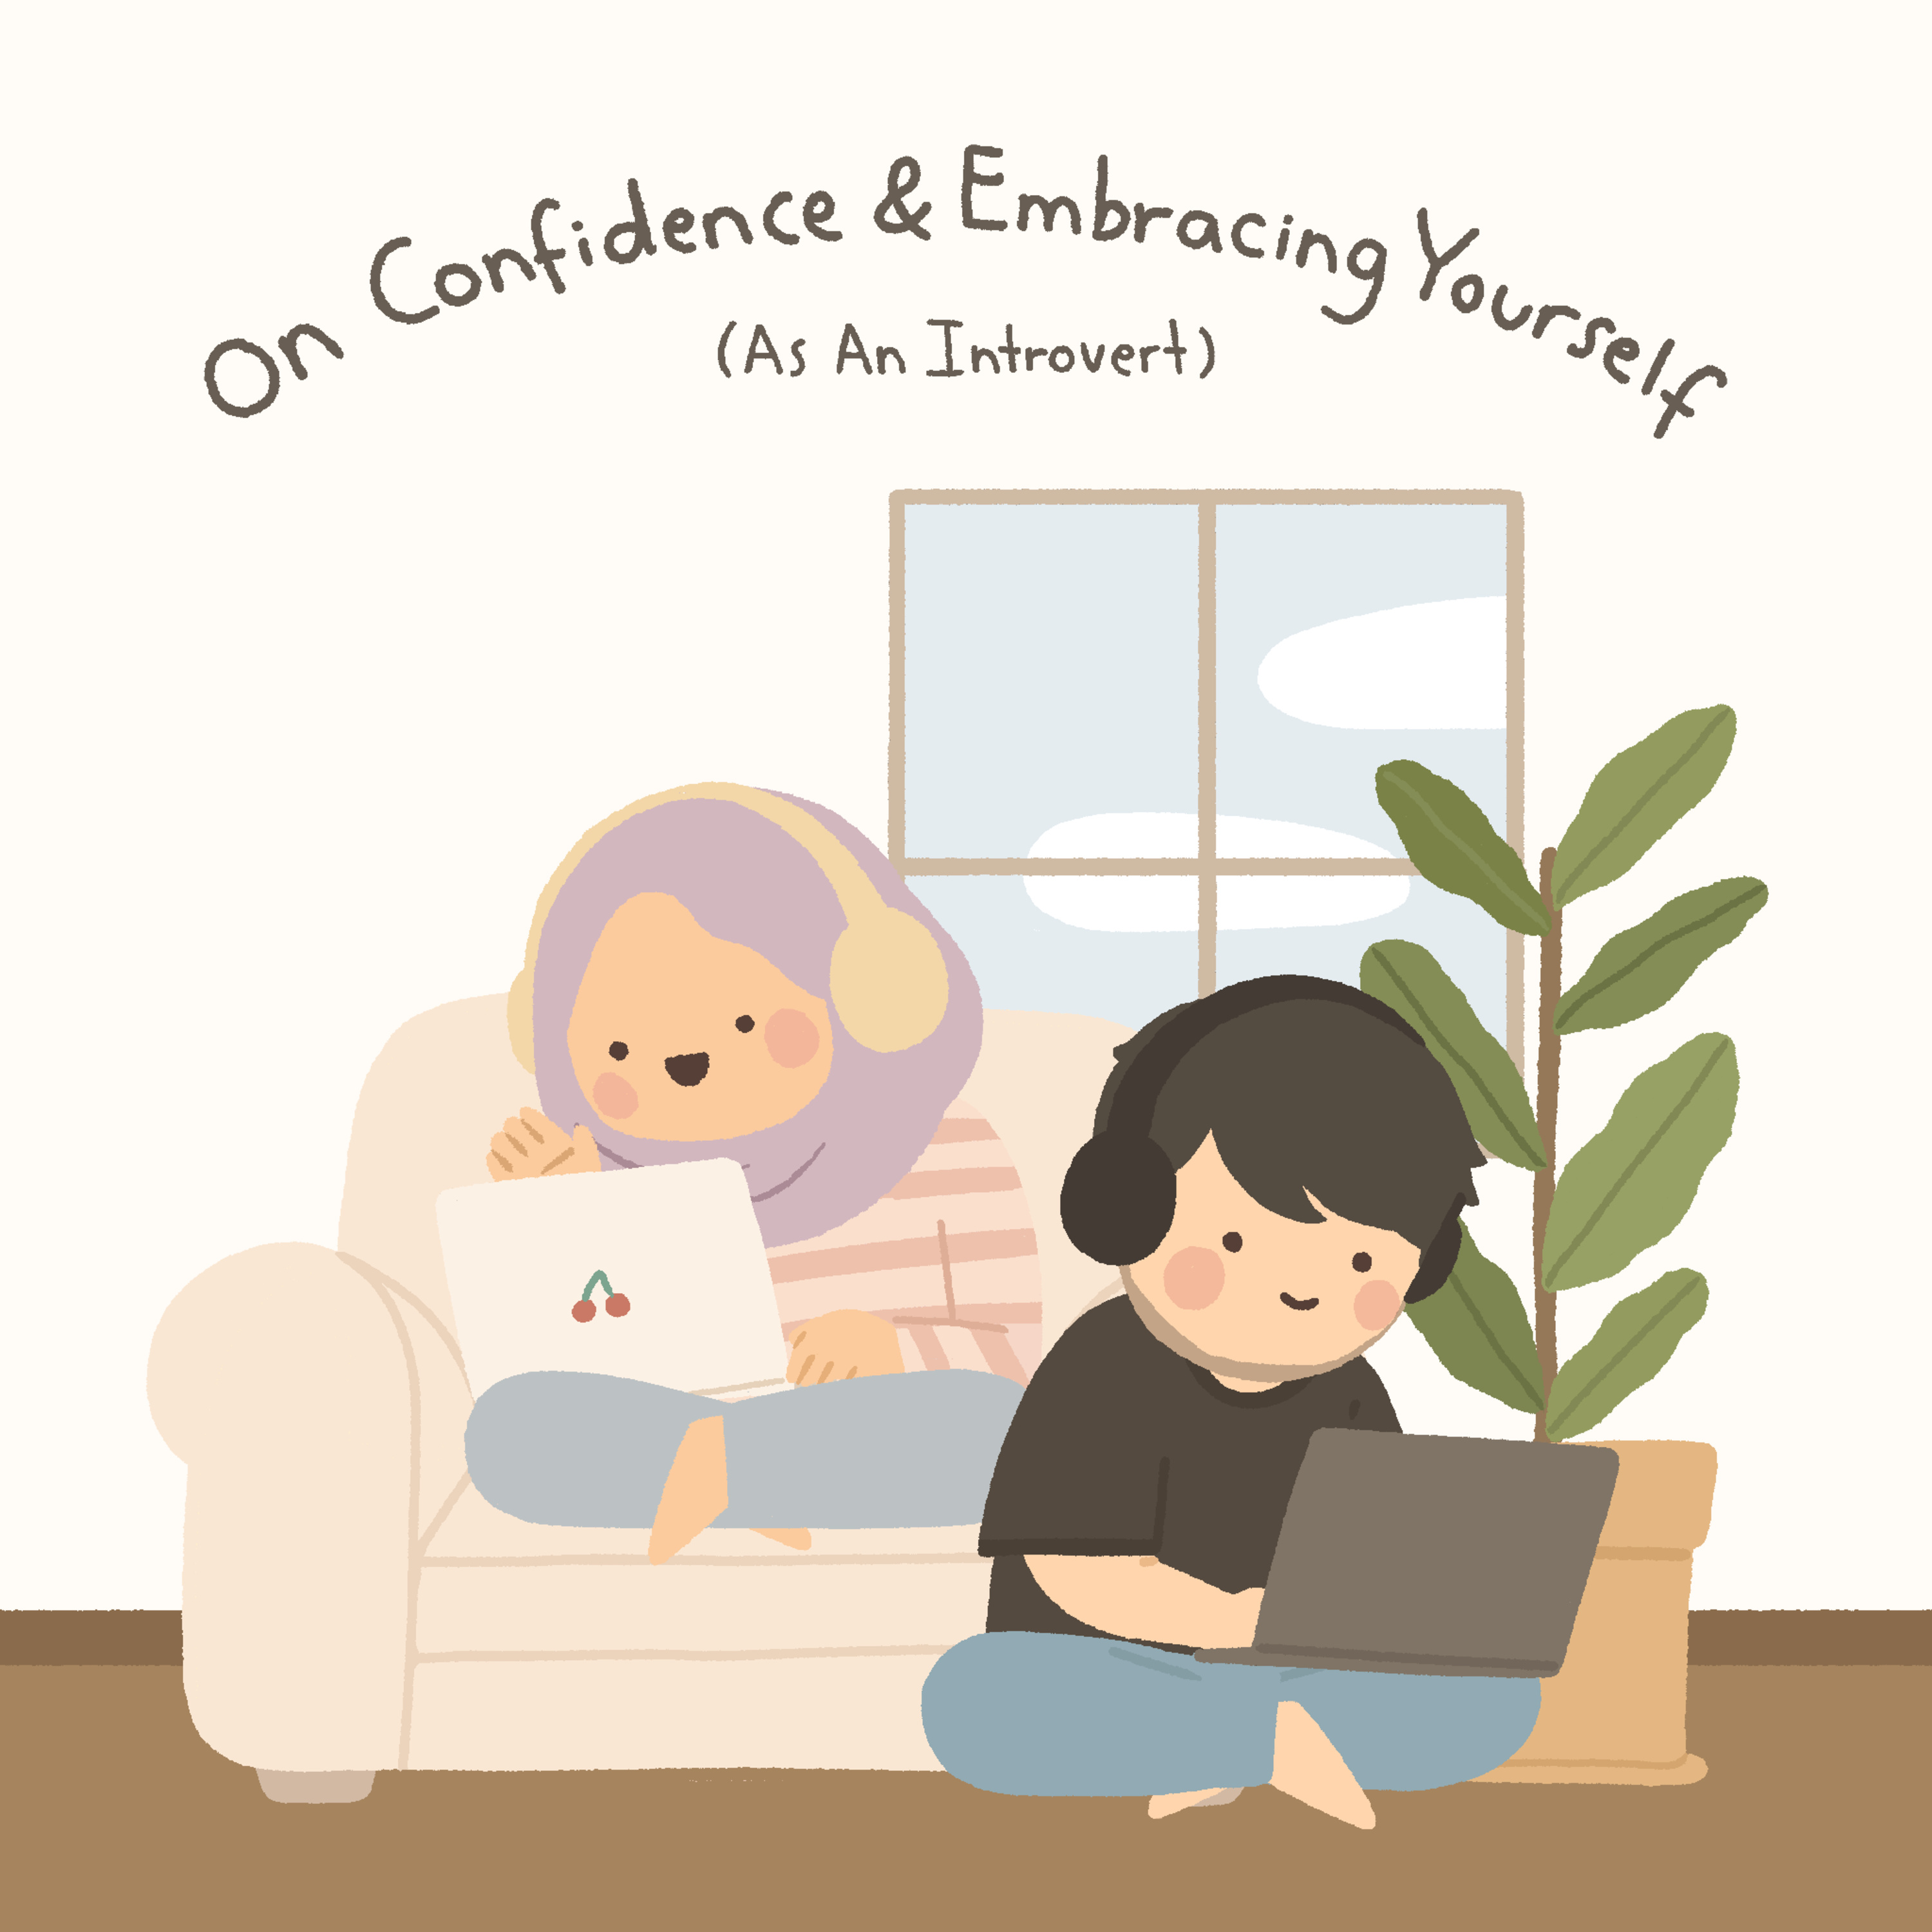 On Confidence & Embracing Yourself (As An Introvert) feat Karim Boubker